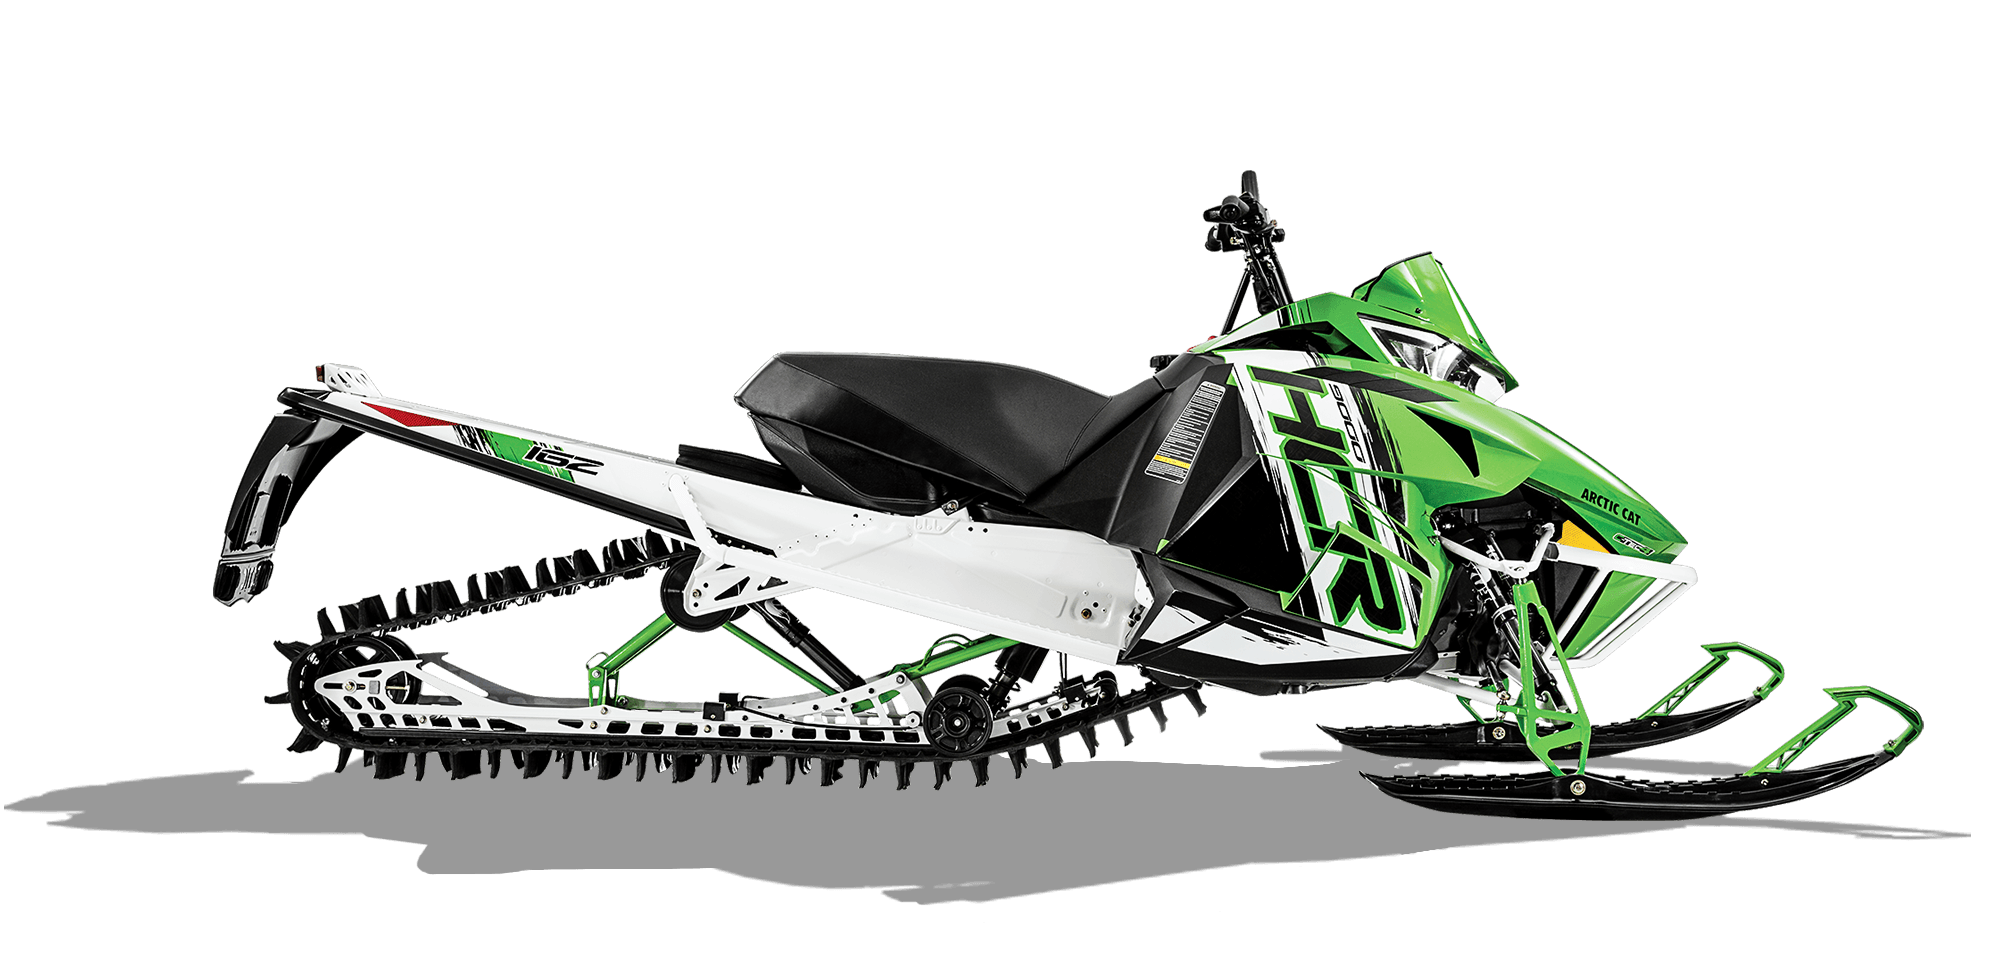 2015 Mountain Sleds » Arctic Cat Arctic, Sleds, Snowmobile